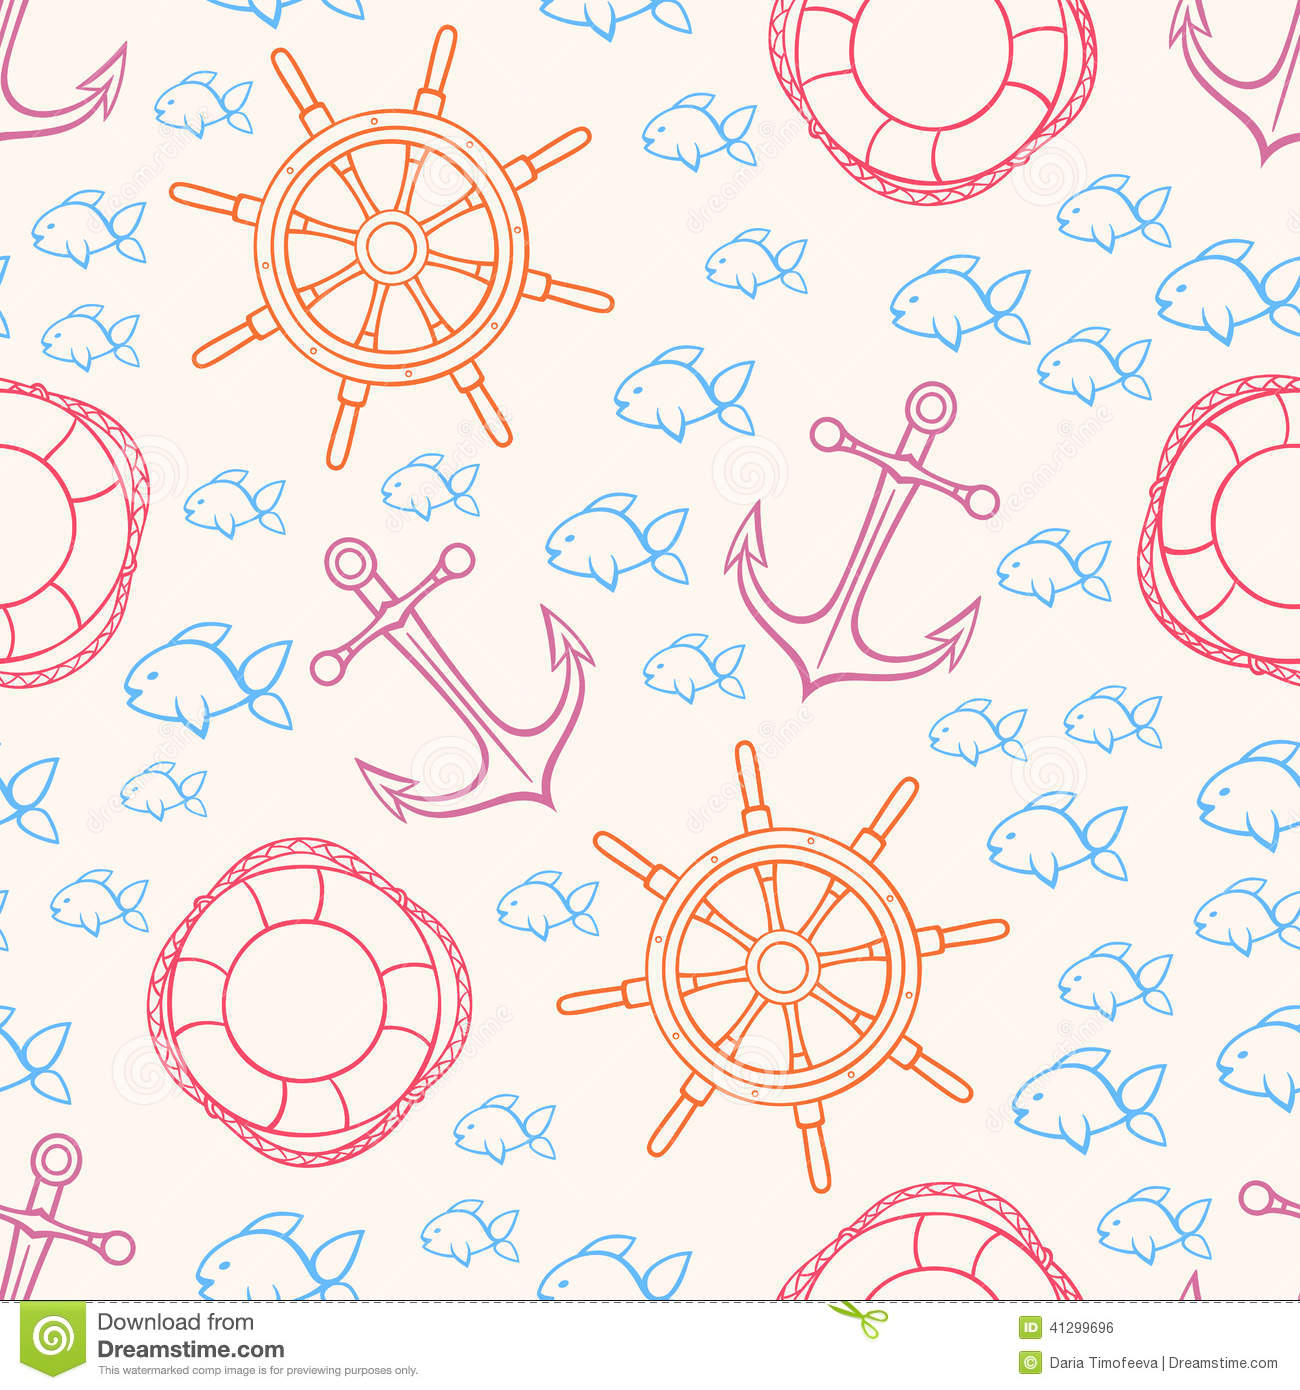 Go Back Images For Cute Anchor Wallpaper 1300x1390